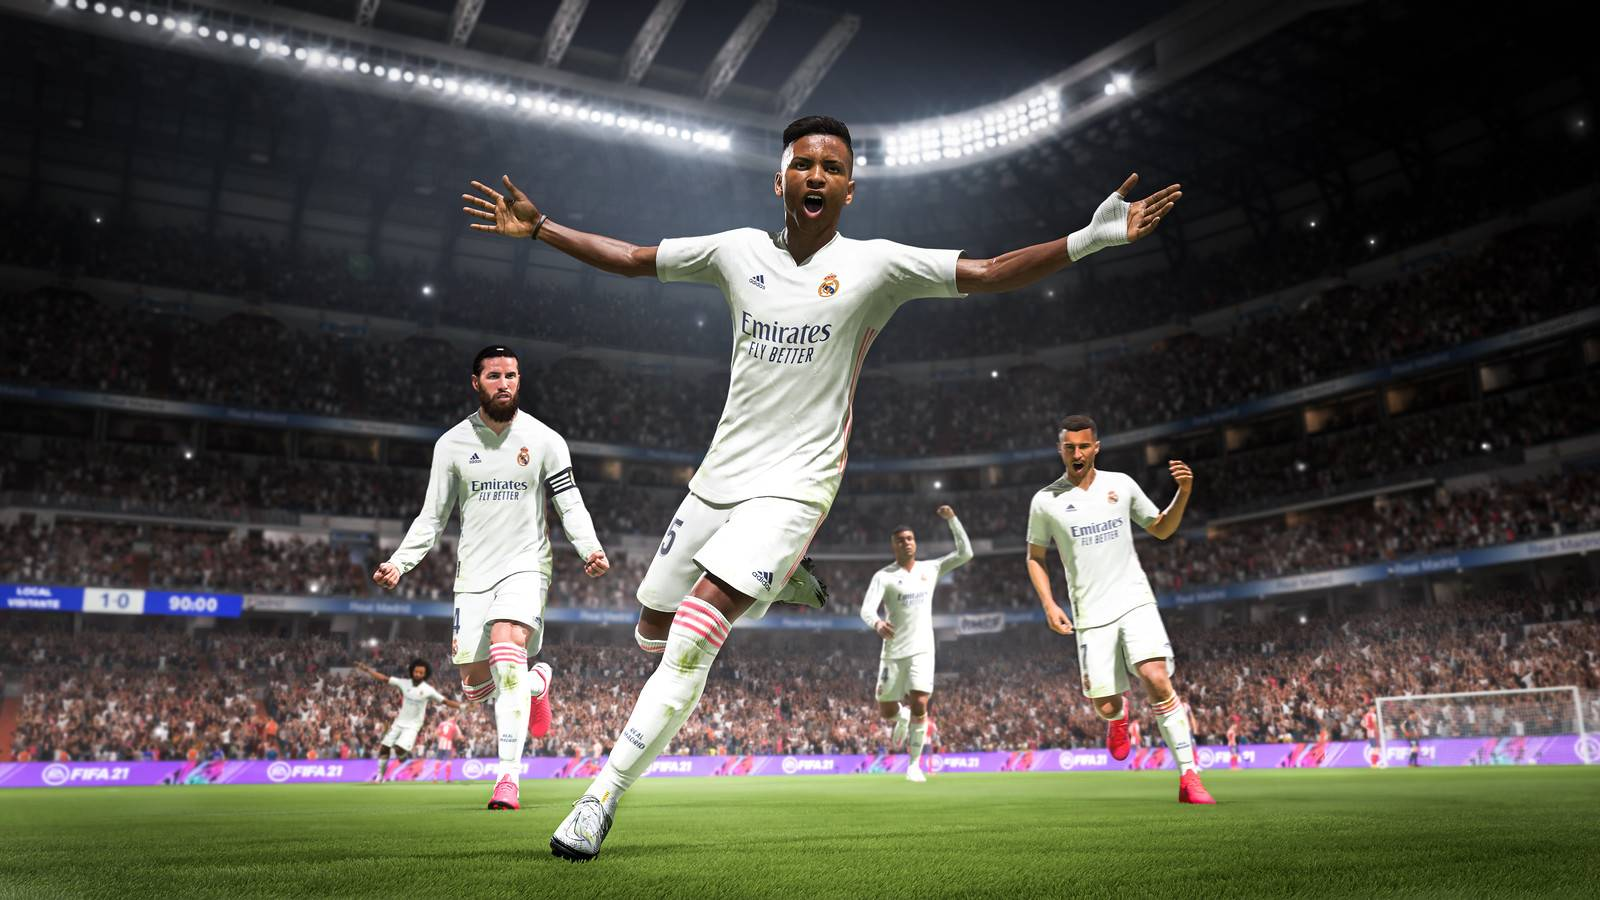 FIFA 21 on PS5